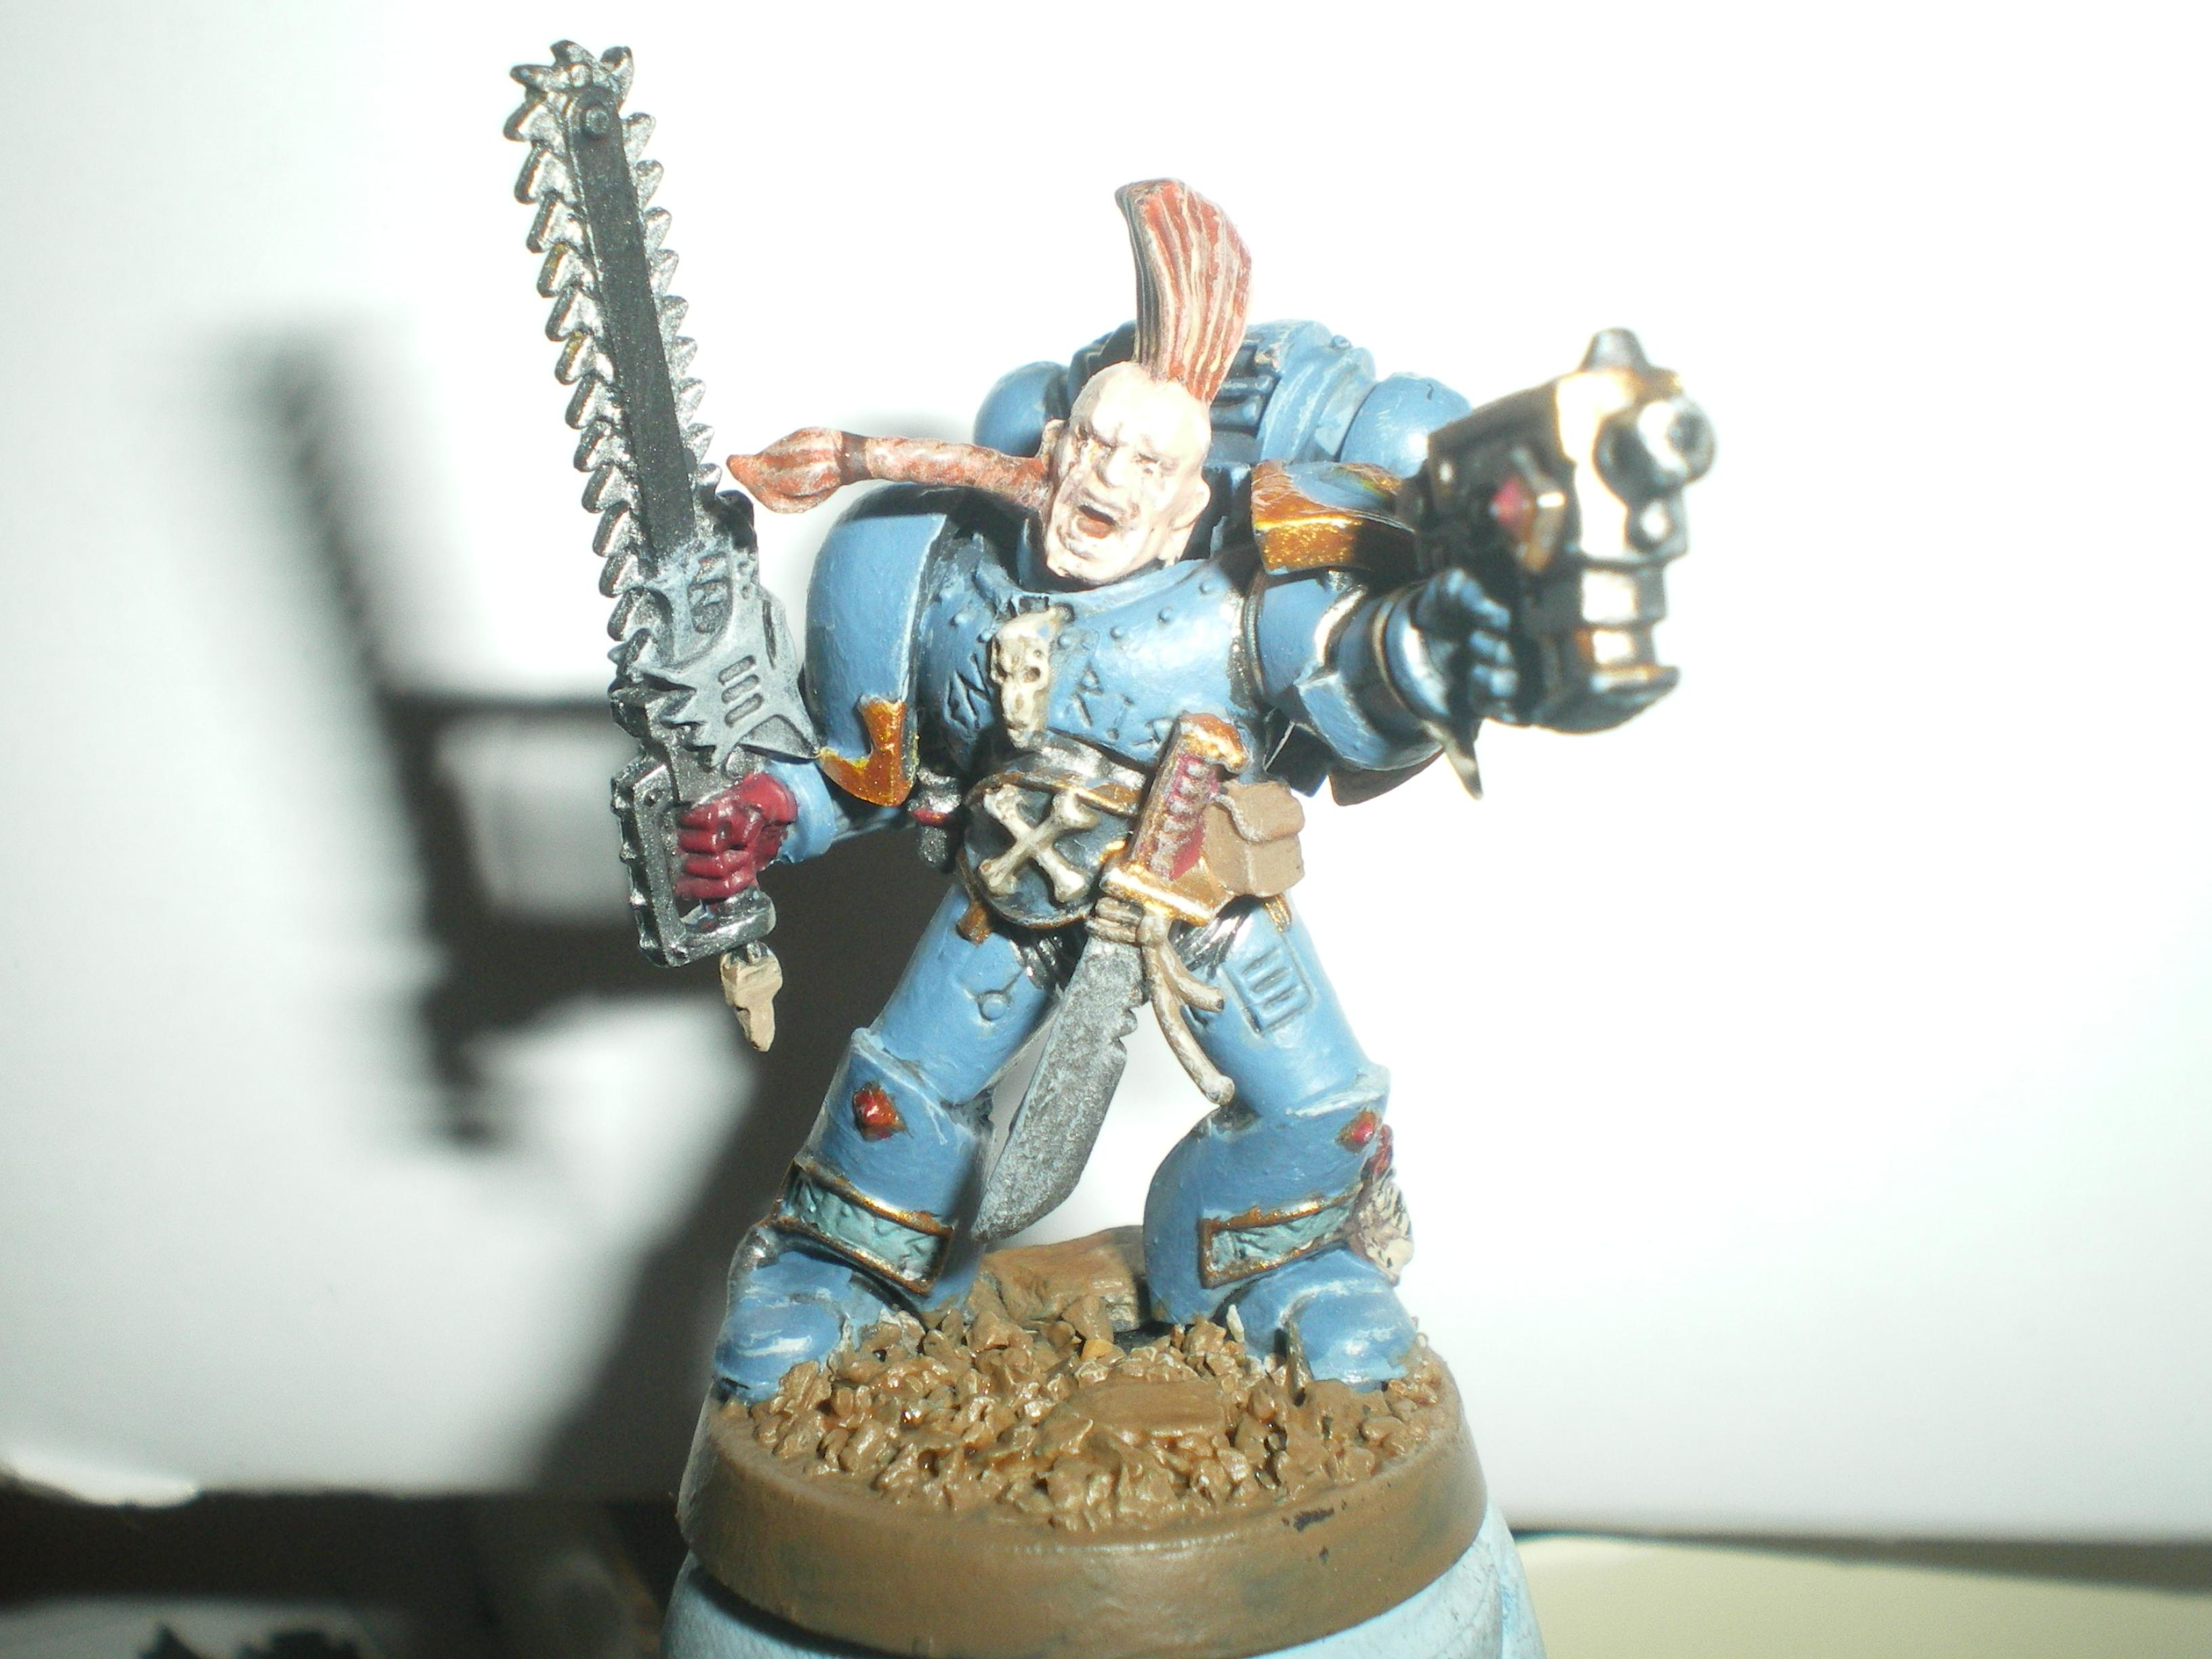 Blood Claw, Space Marines, Space Wolves, Warhammer 40,000